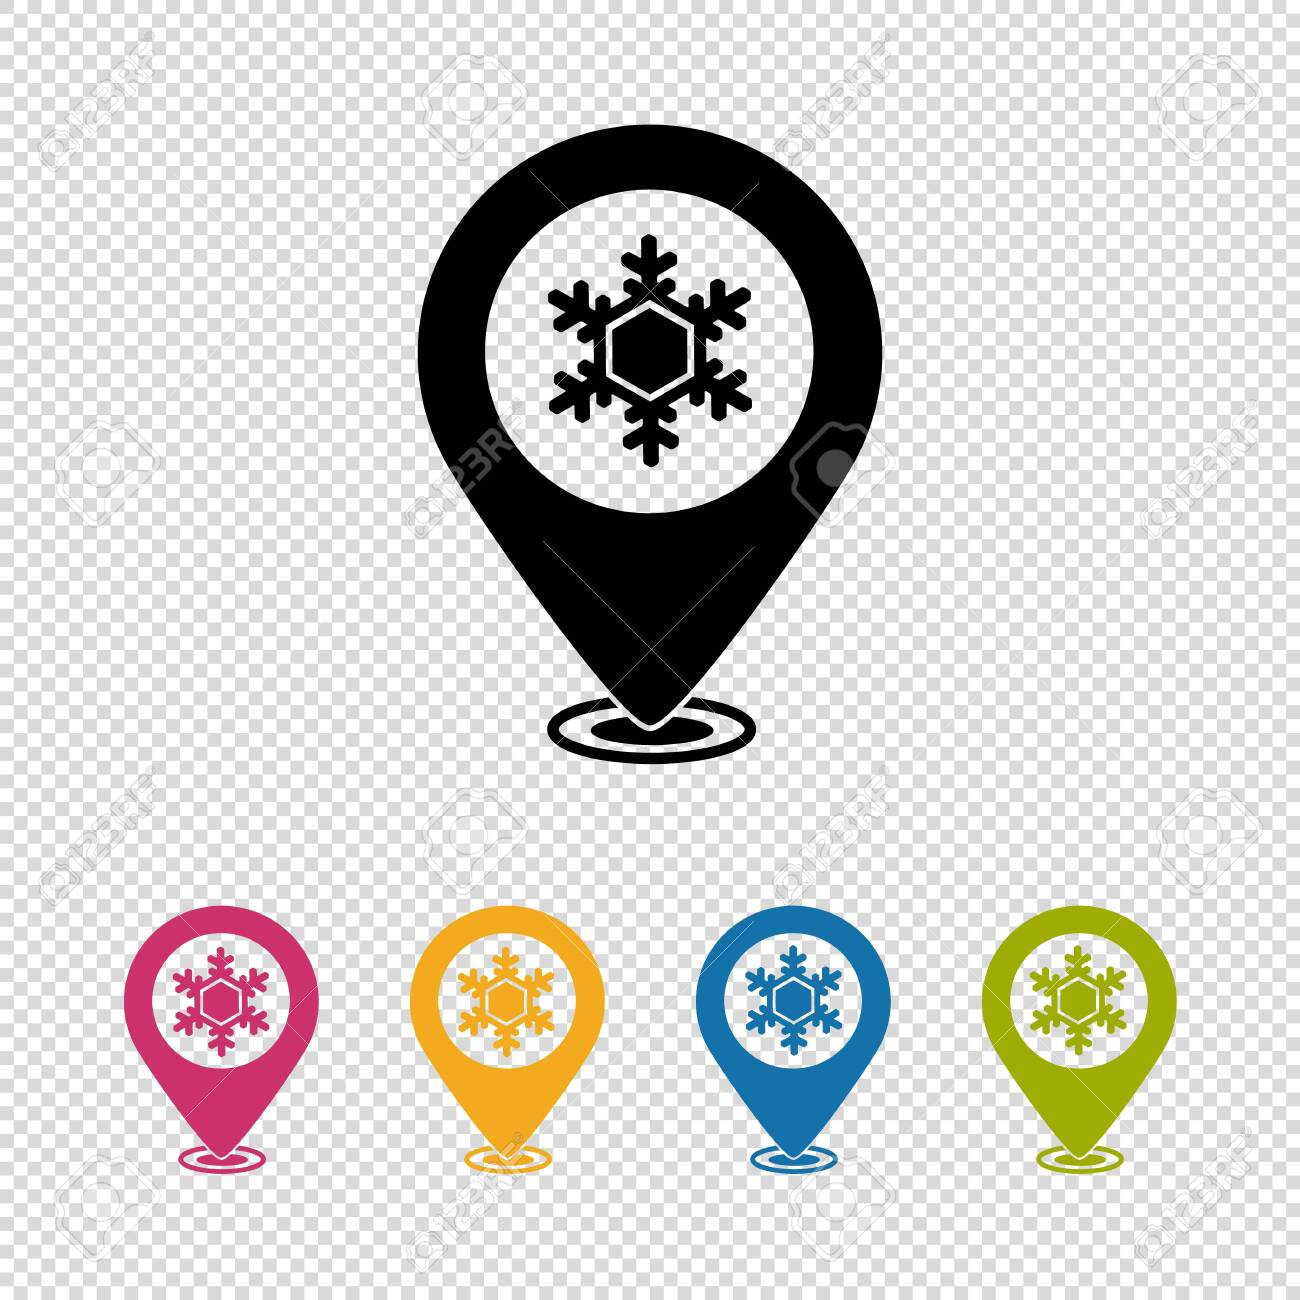 Map Pointer, Location Finder, Weather Icon - Vector Illustration